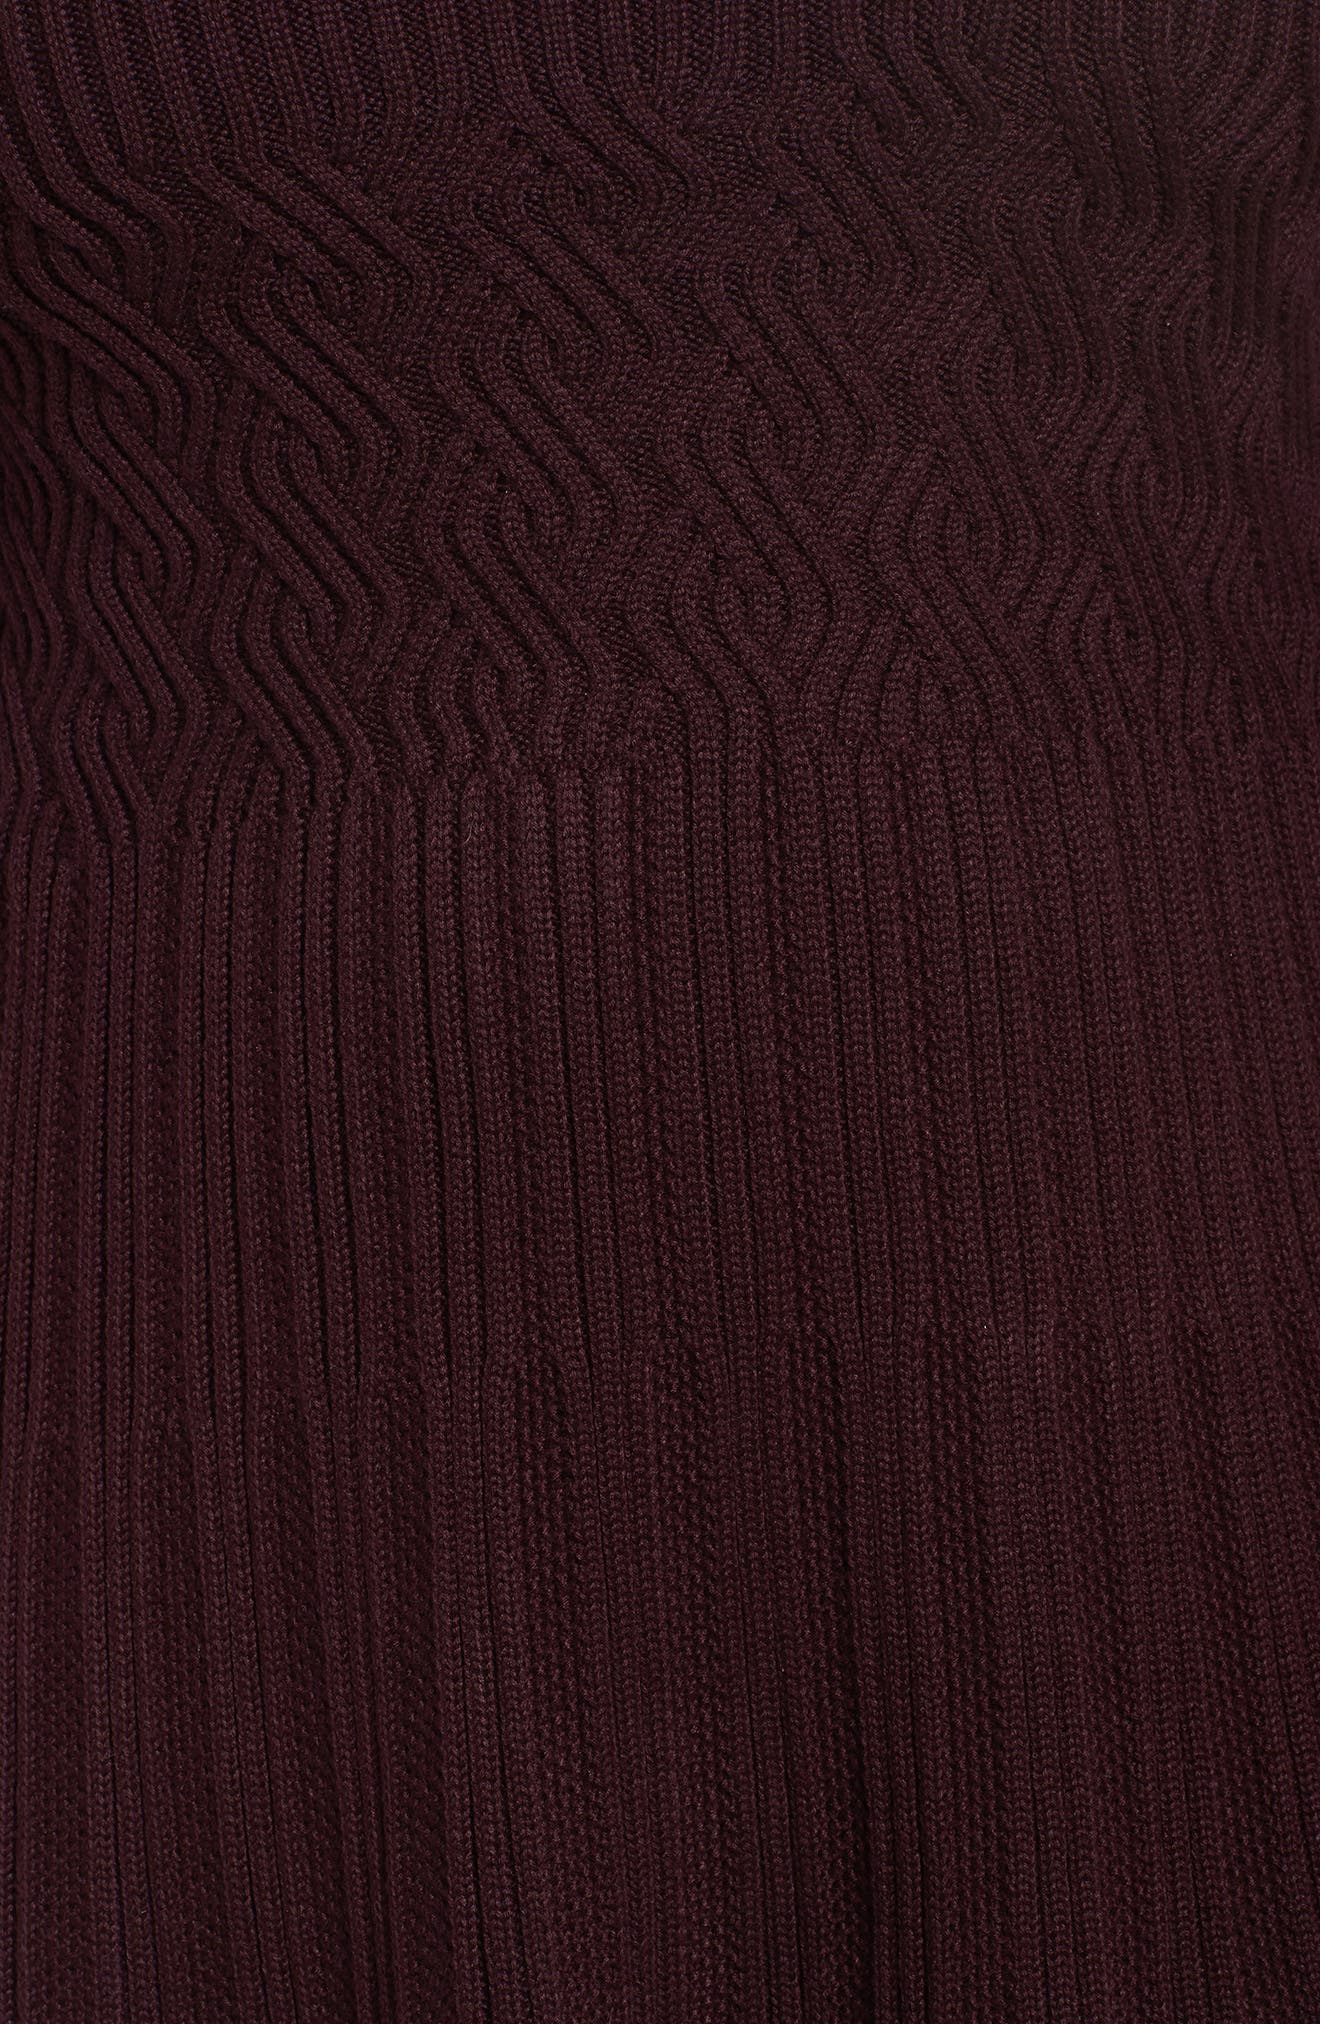 Ribbed Waist Fit & Flare Dress,                             Alternate thumbnail 5, color,                             Wine